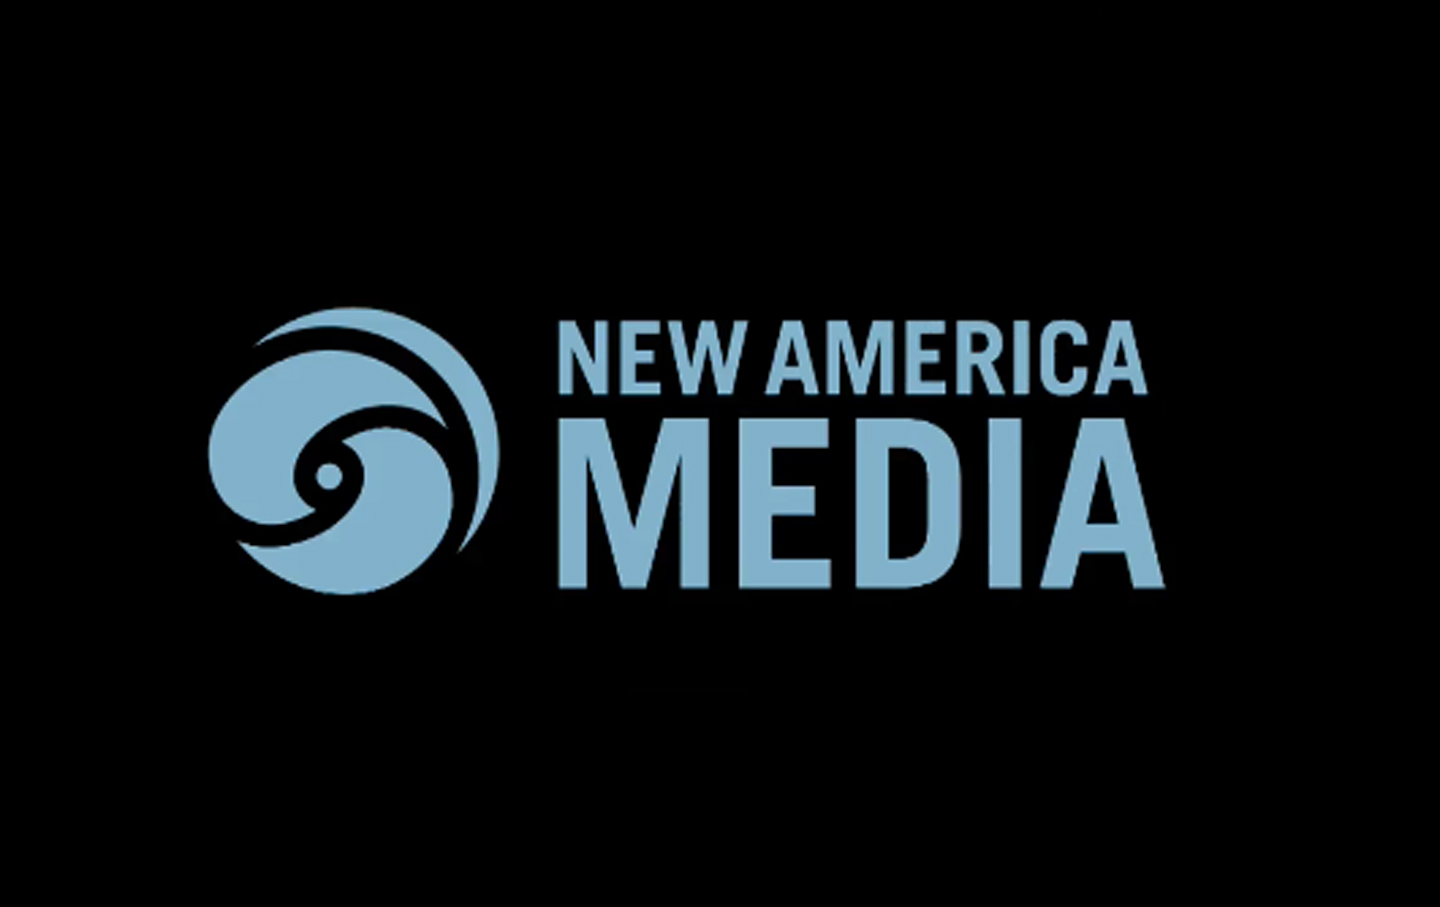 New-America-Media-logo-otuo-img